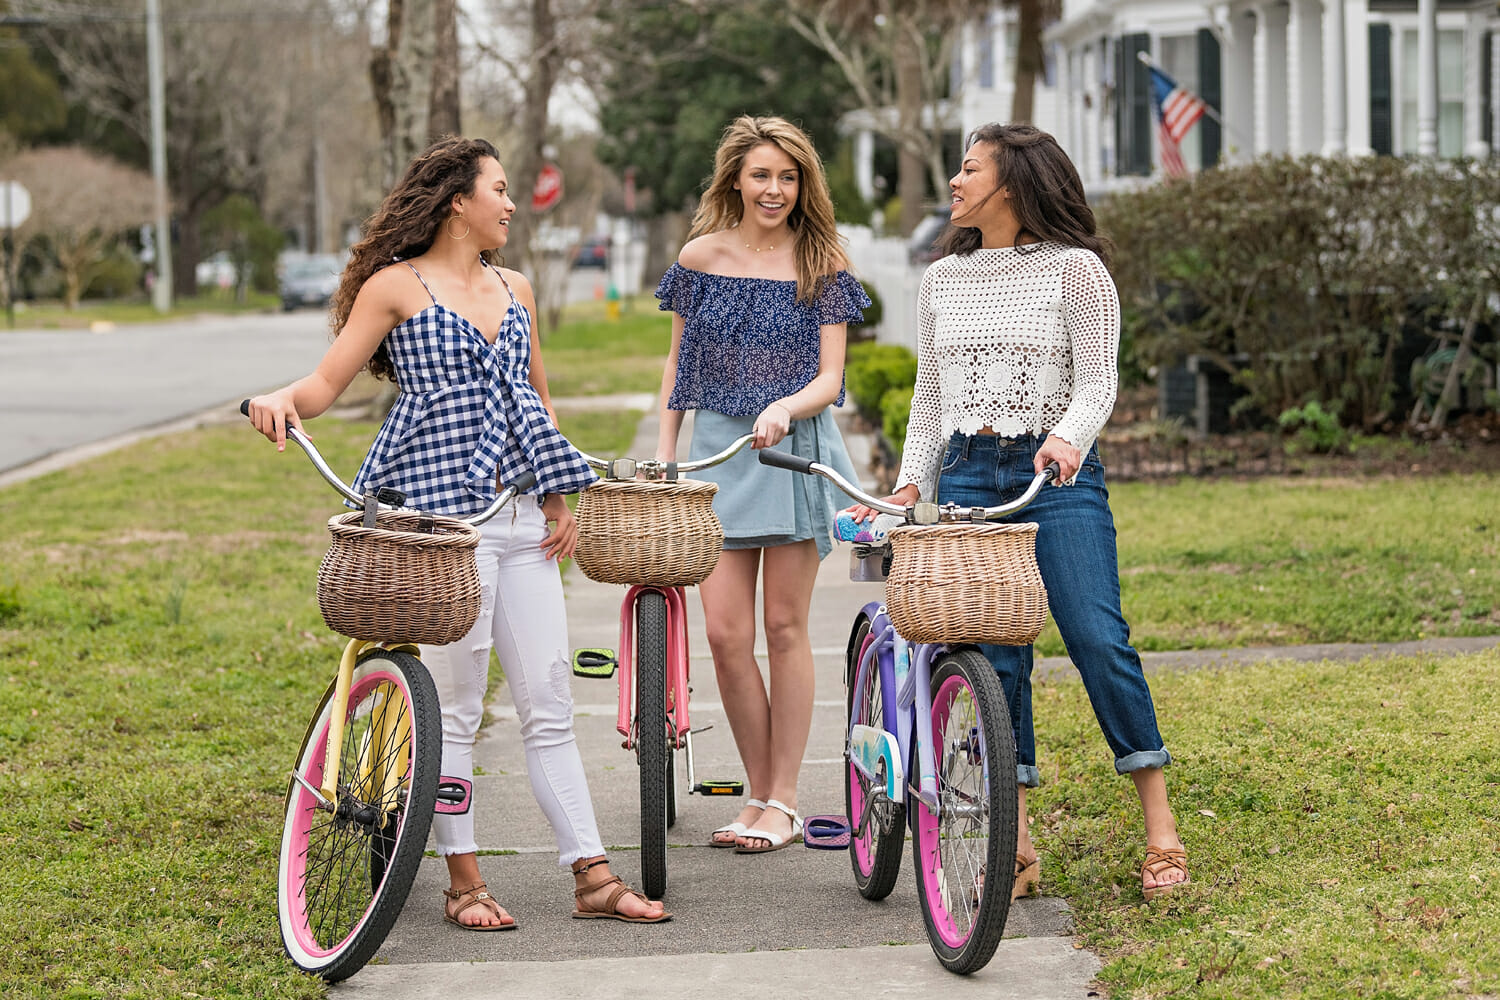 3 young ladies with bicycles chatting